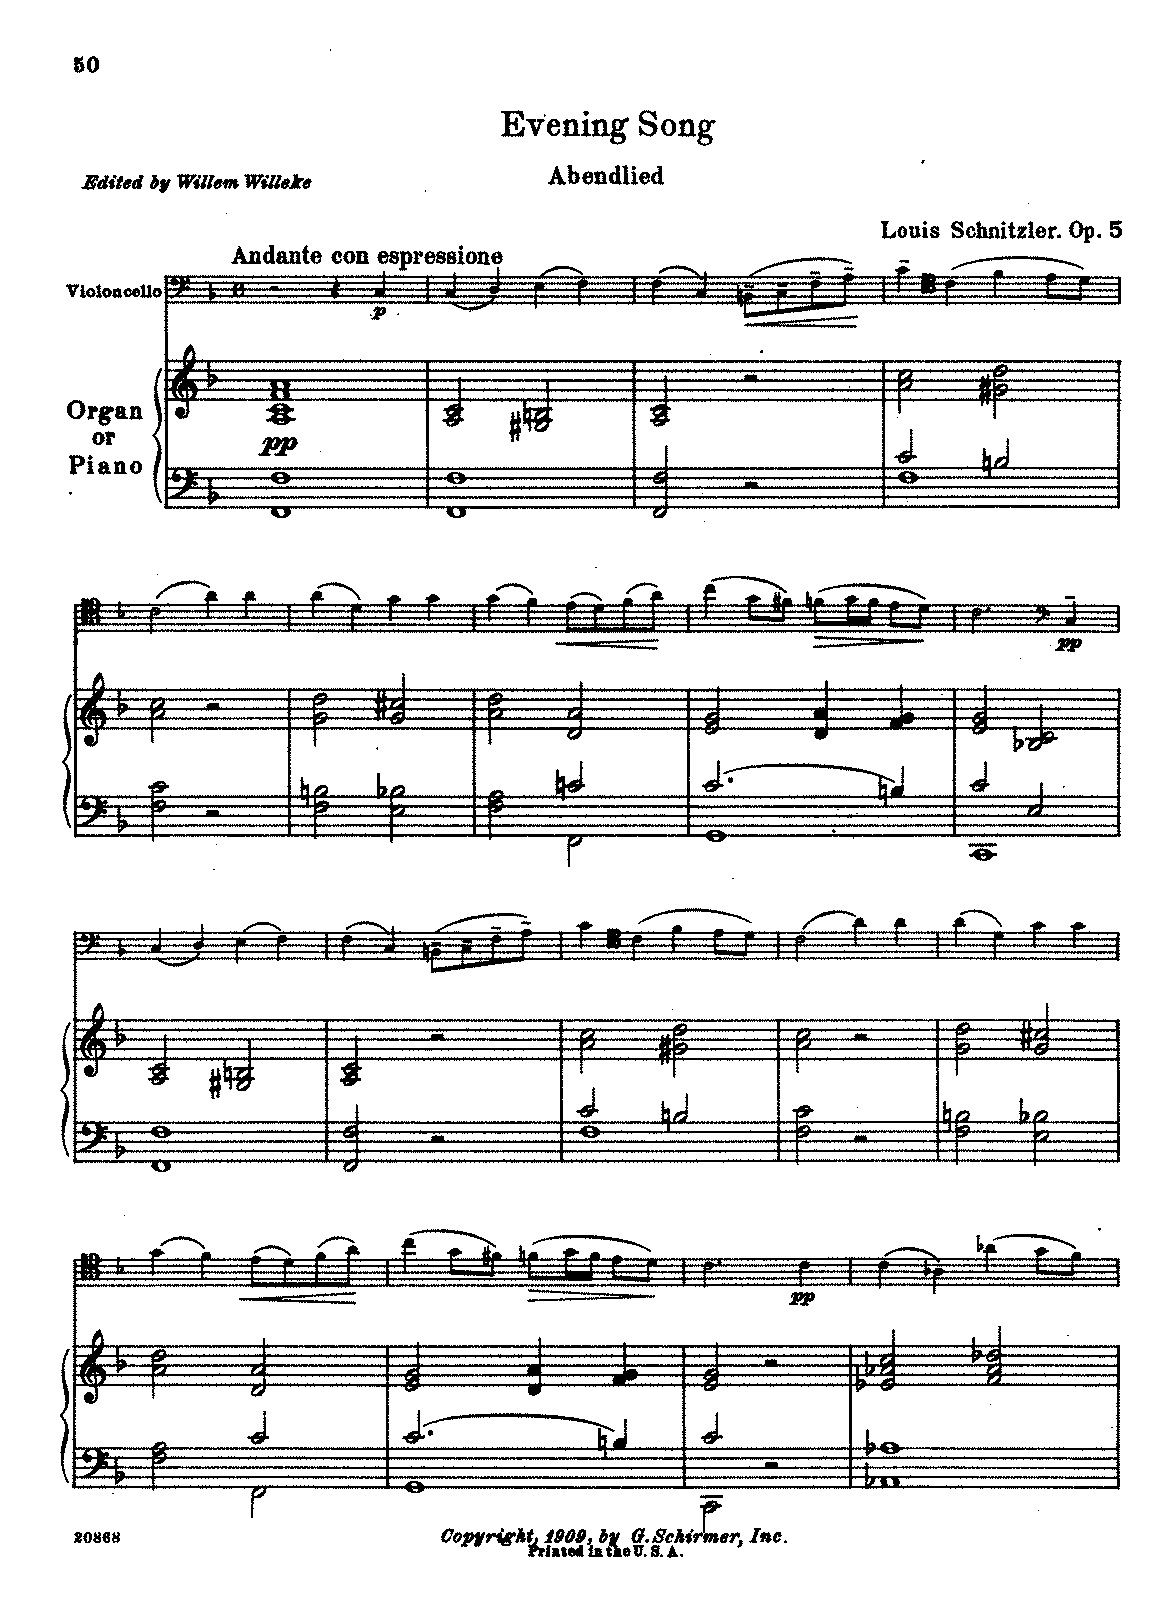 PMLP236814-Schnitzler - Evening Song Abendlied Op5 (Willeke) for cello and piano.pdf